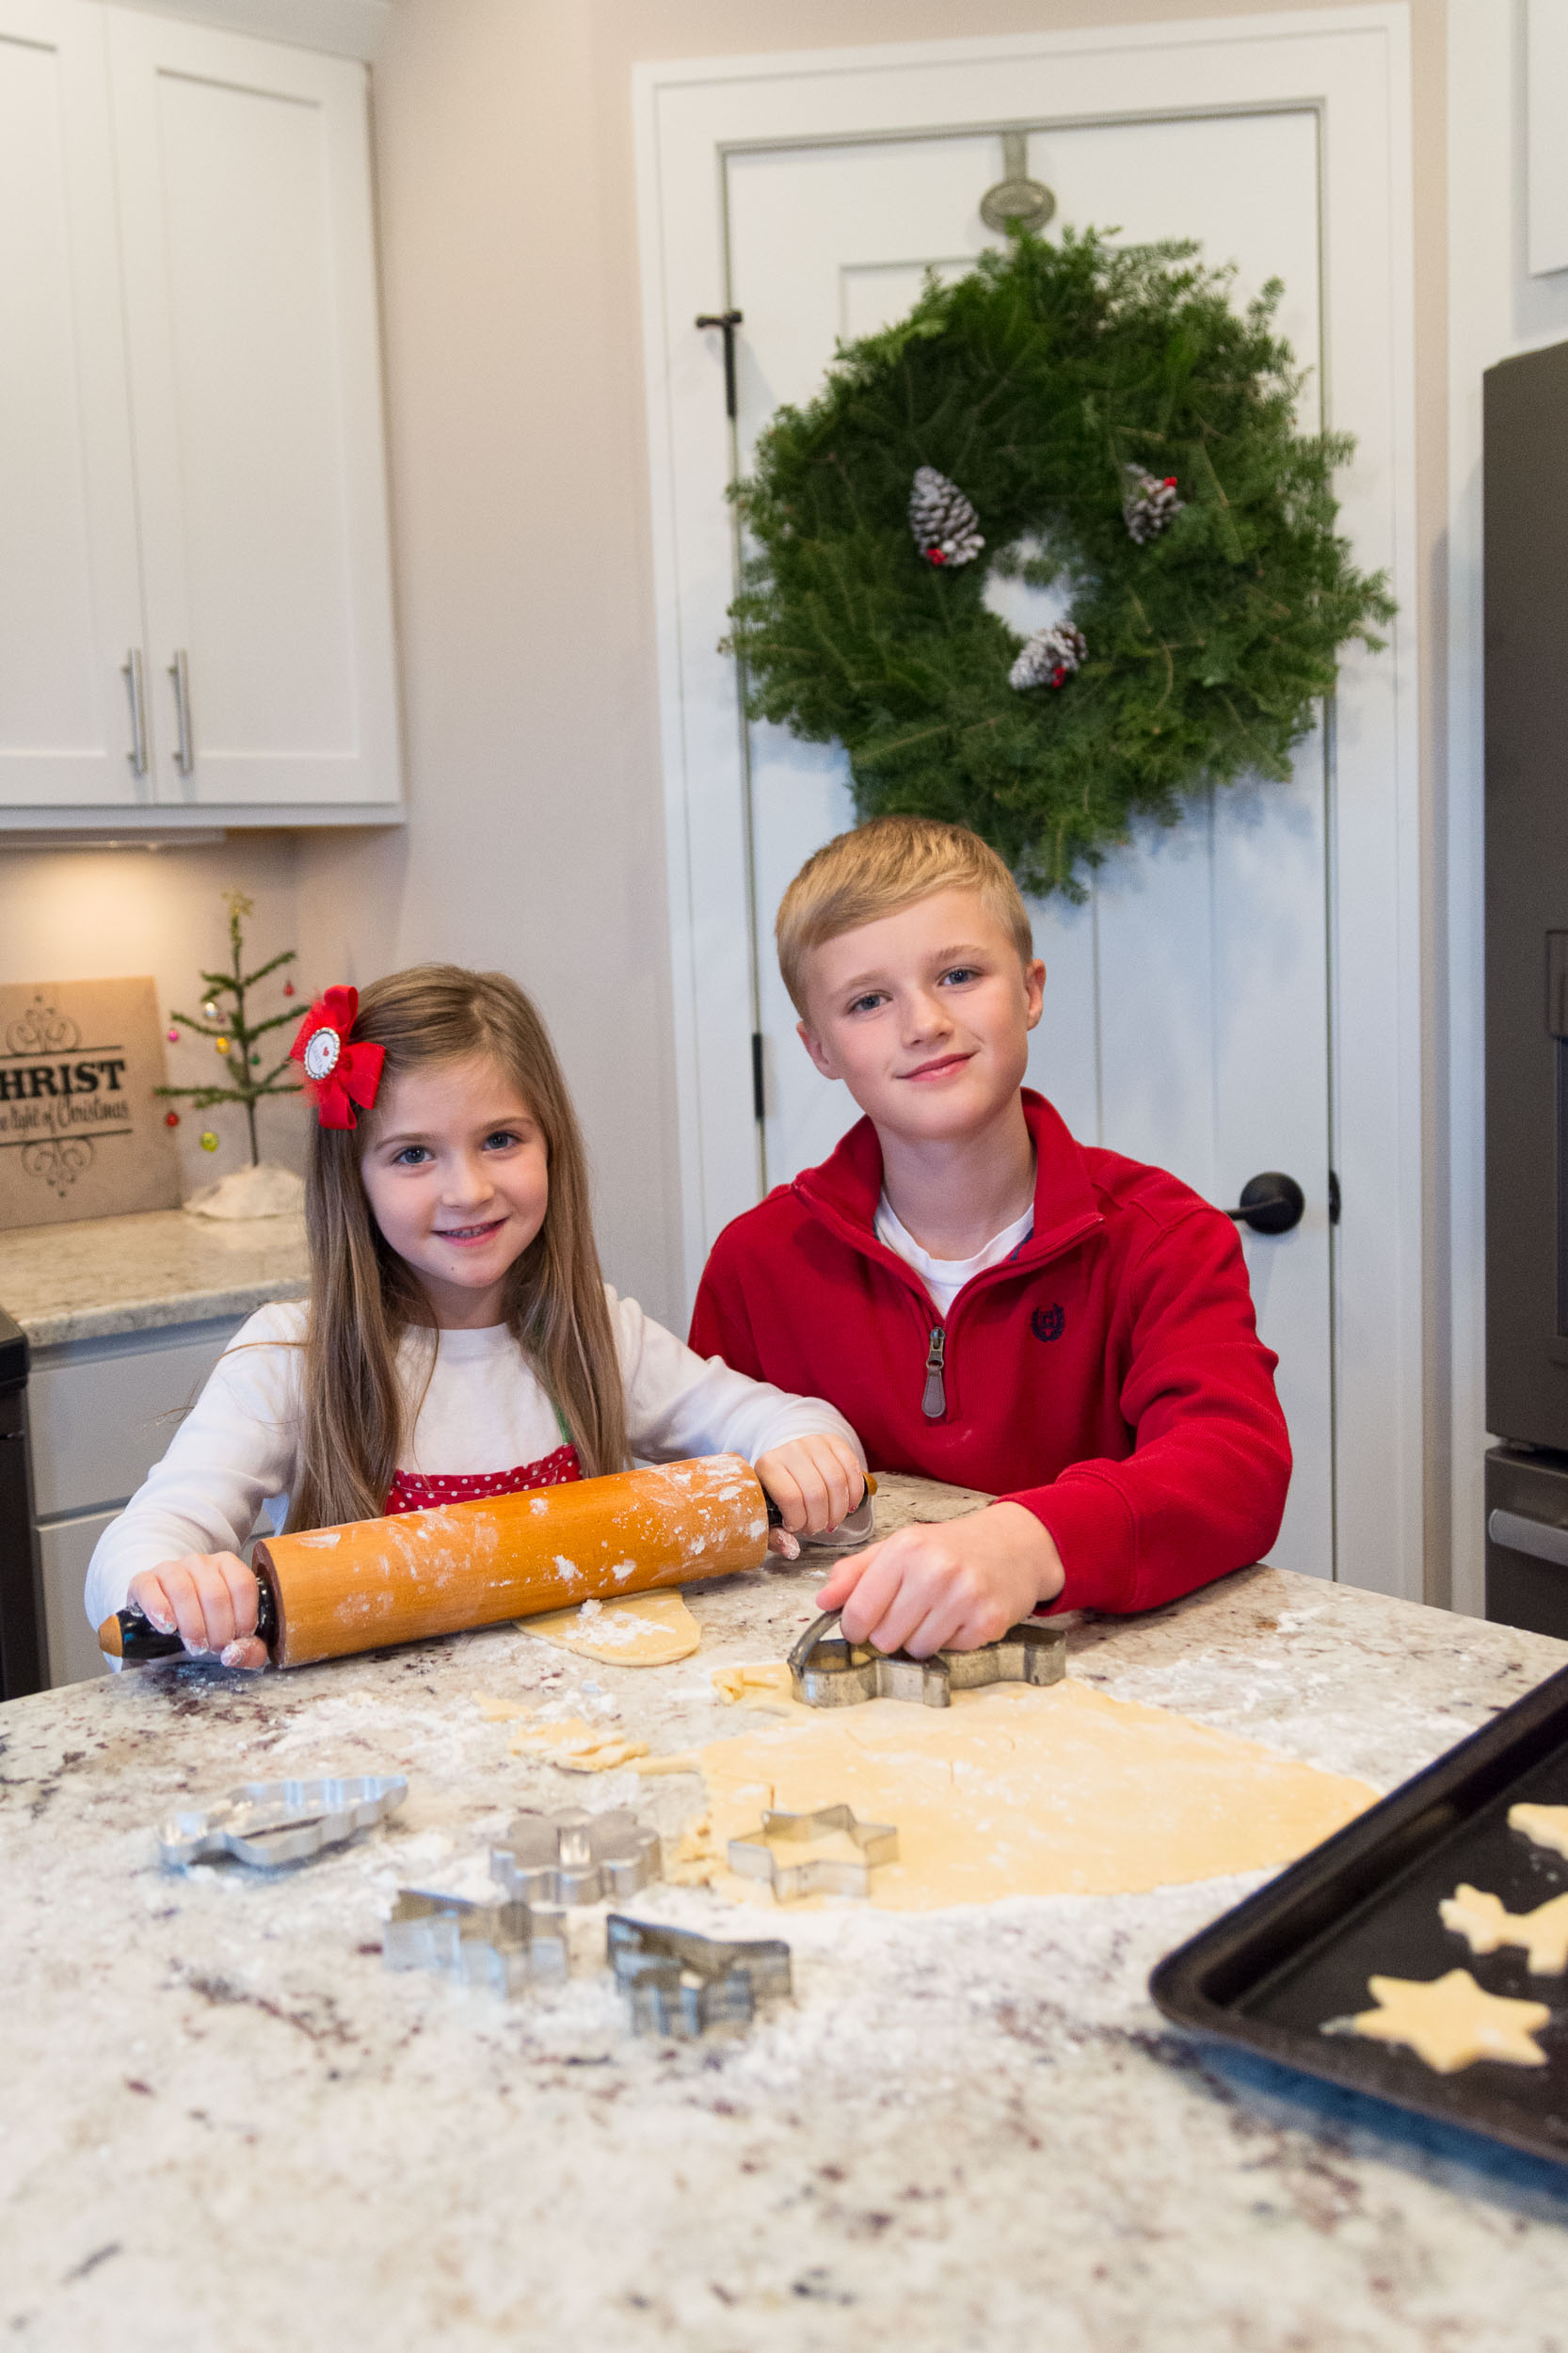 Sibling Children kitchen baking holiday photo portrait | Photo by BillyBengtson.com